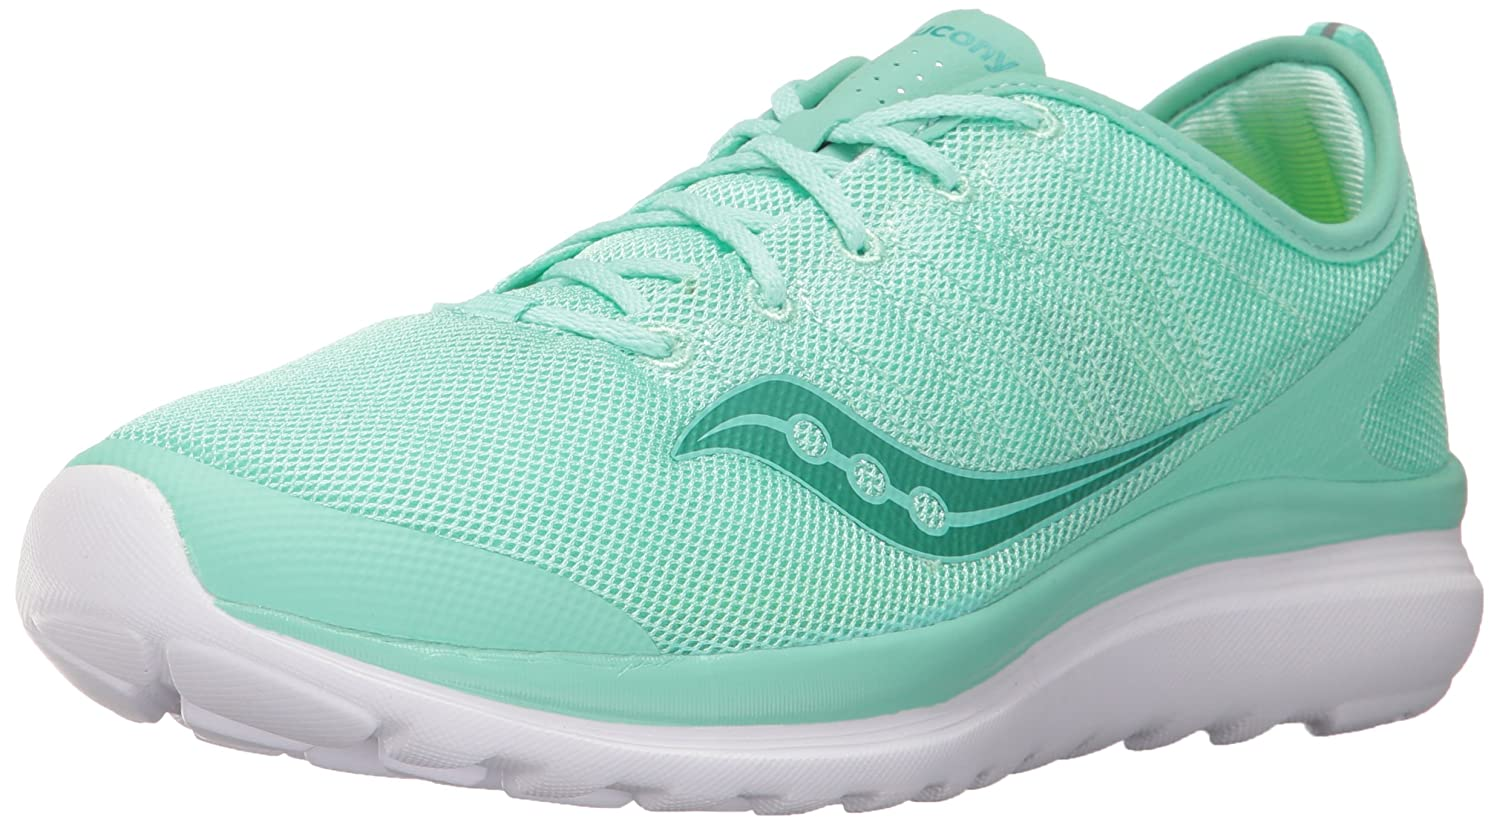 Saucony Women's Swivel Sneaker B01N0THX9C 9.5 B(M) US|Mint